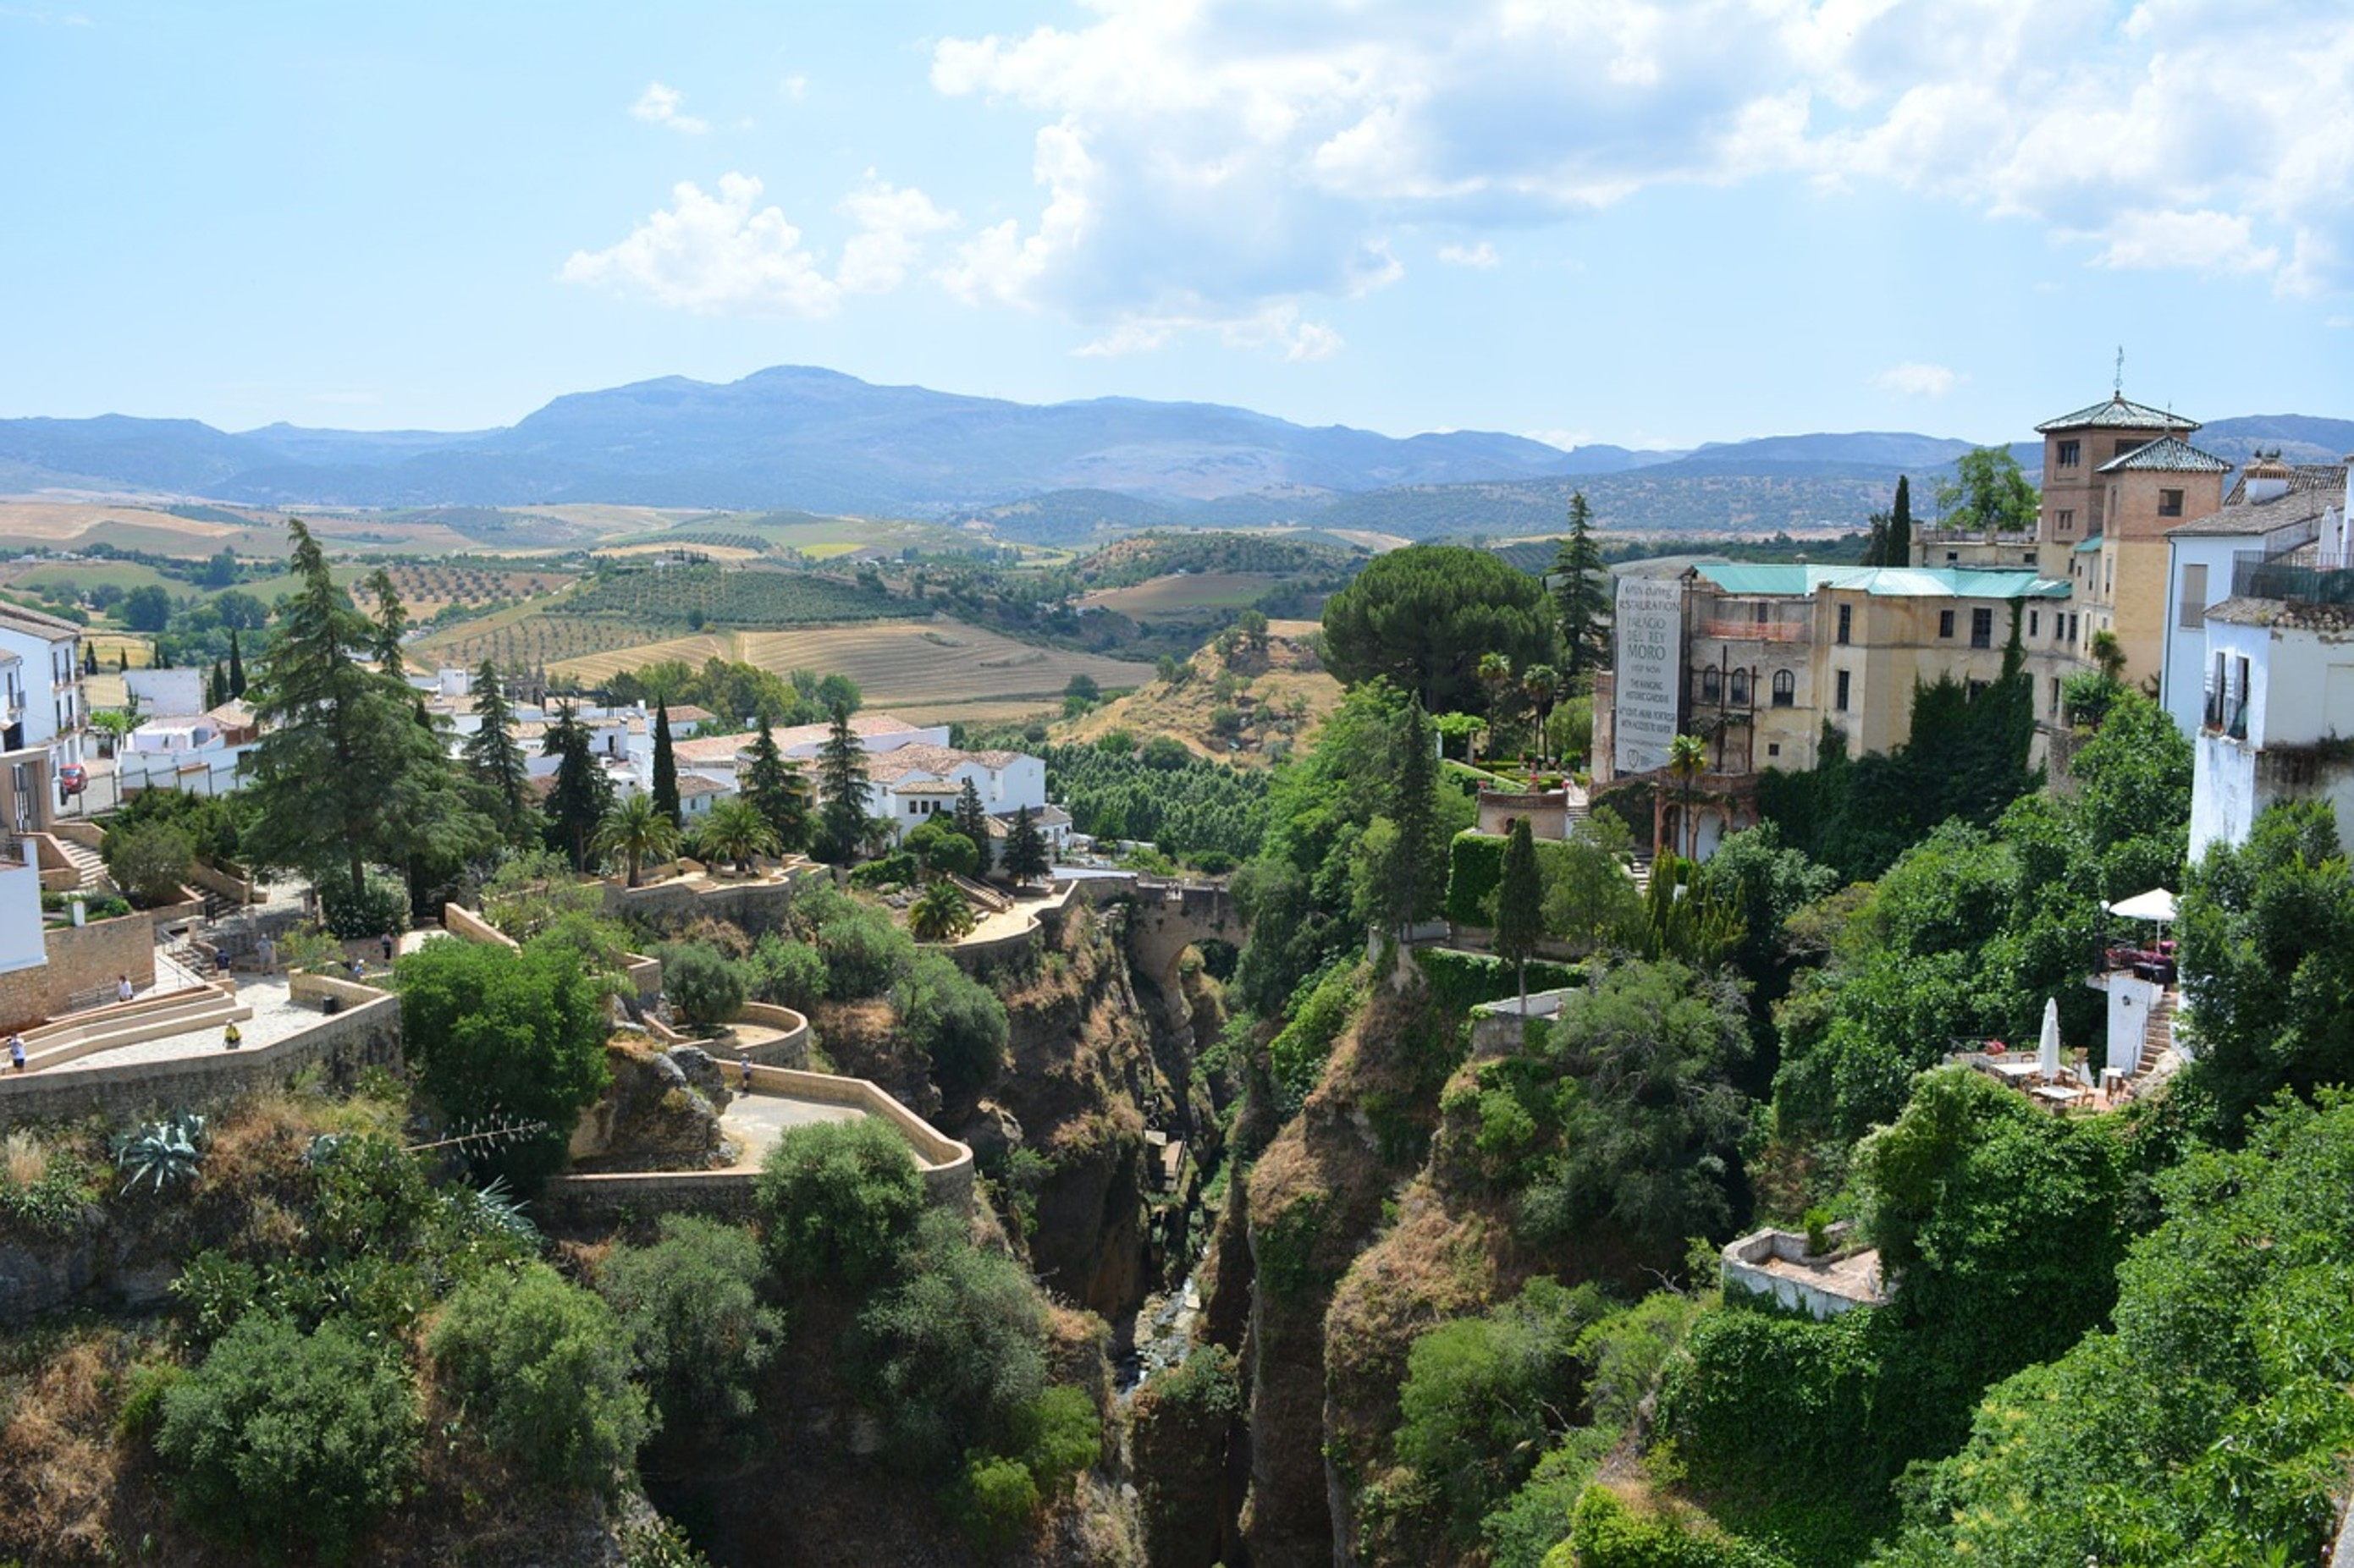 The gorge in Ronda, Andalusia